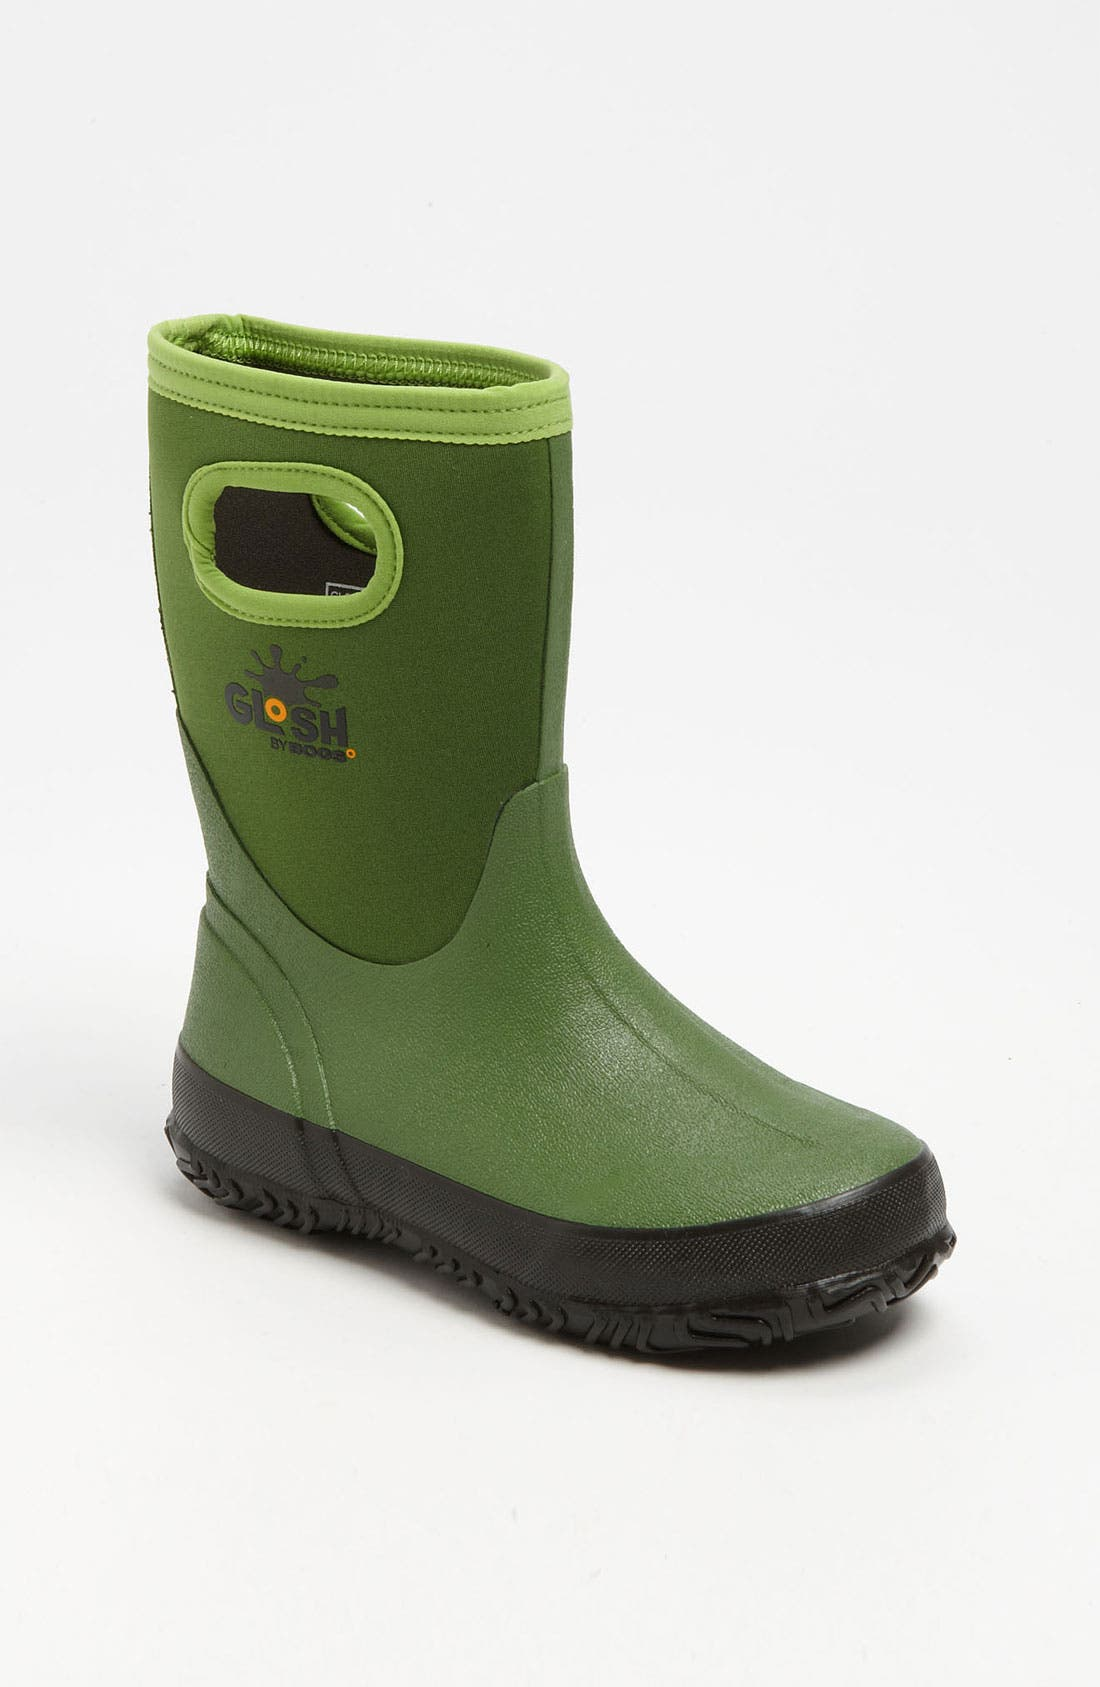 Main Image - Bogs 'Glosh' Rain Boot (Toddler, Little Kid & Big Kid)